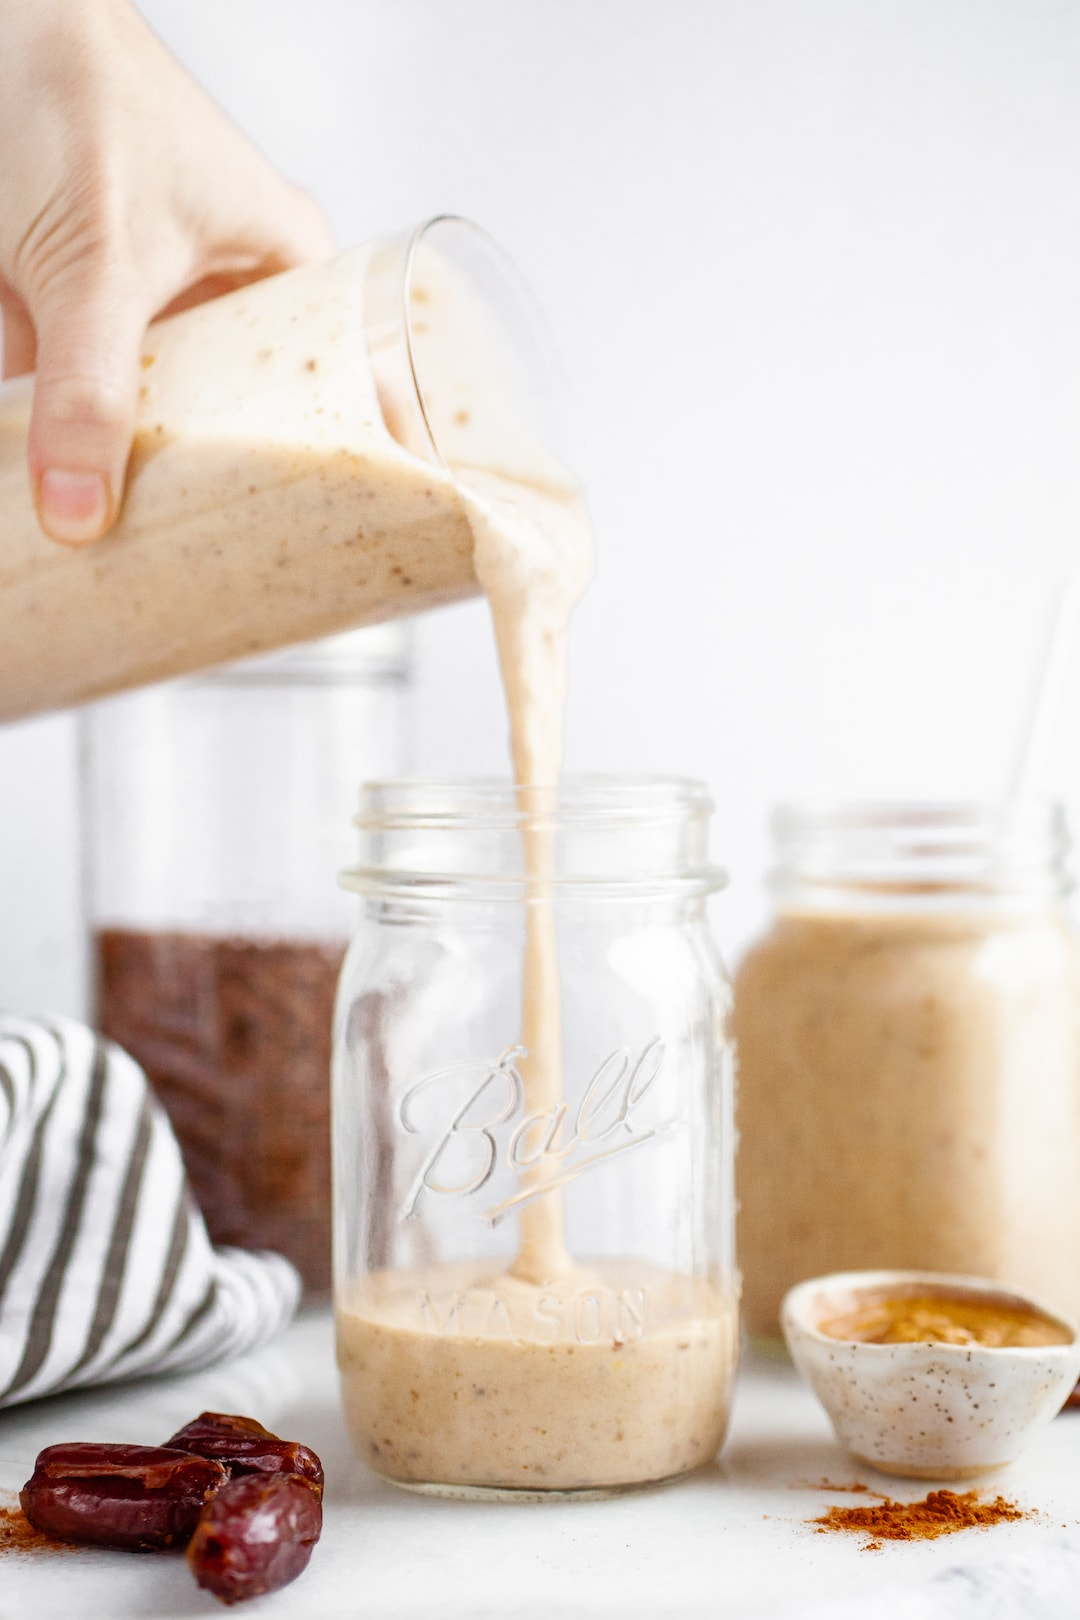 Banana Almond Butter Date Smoothie Recipe with flax and chia seeds